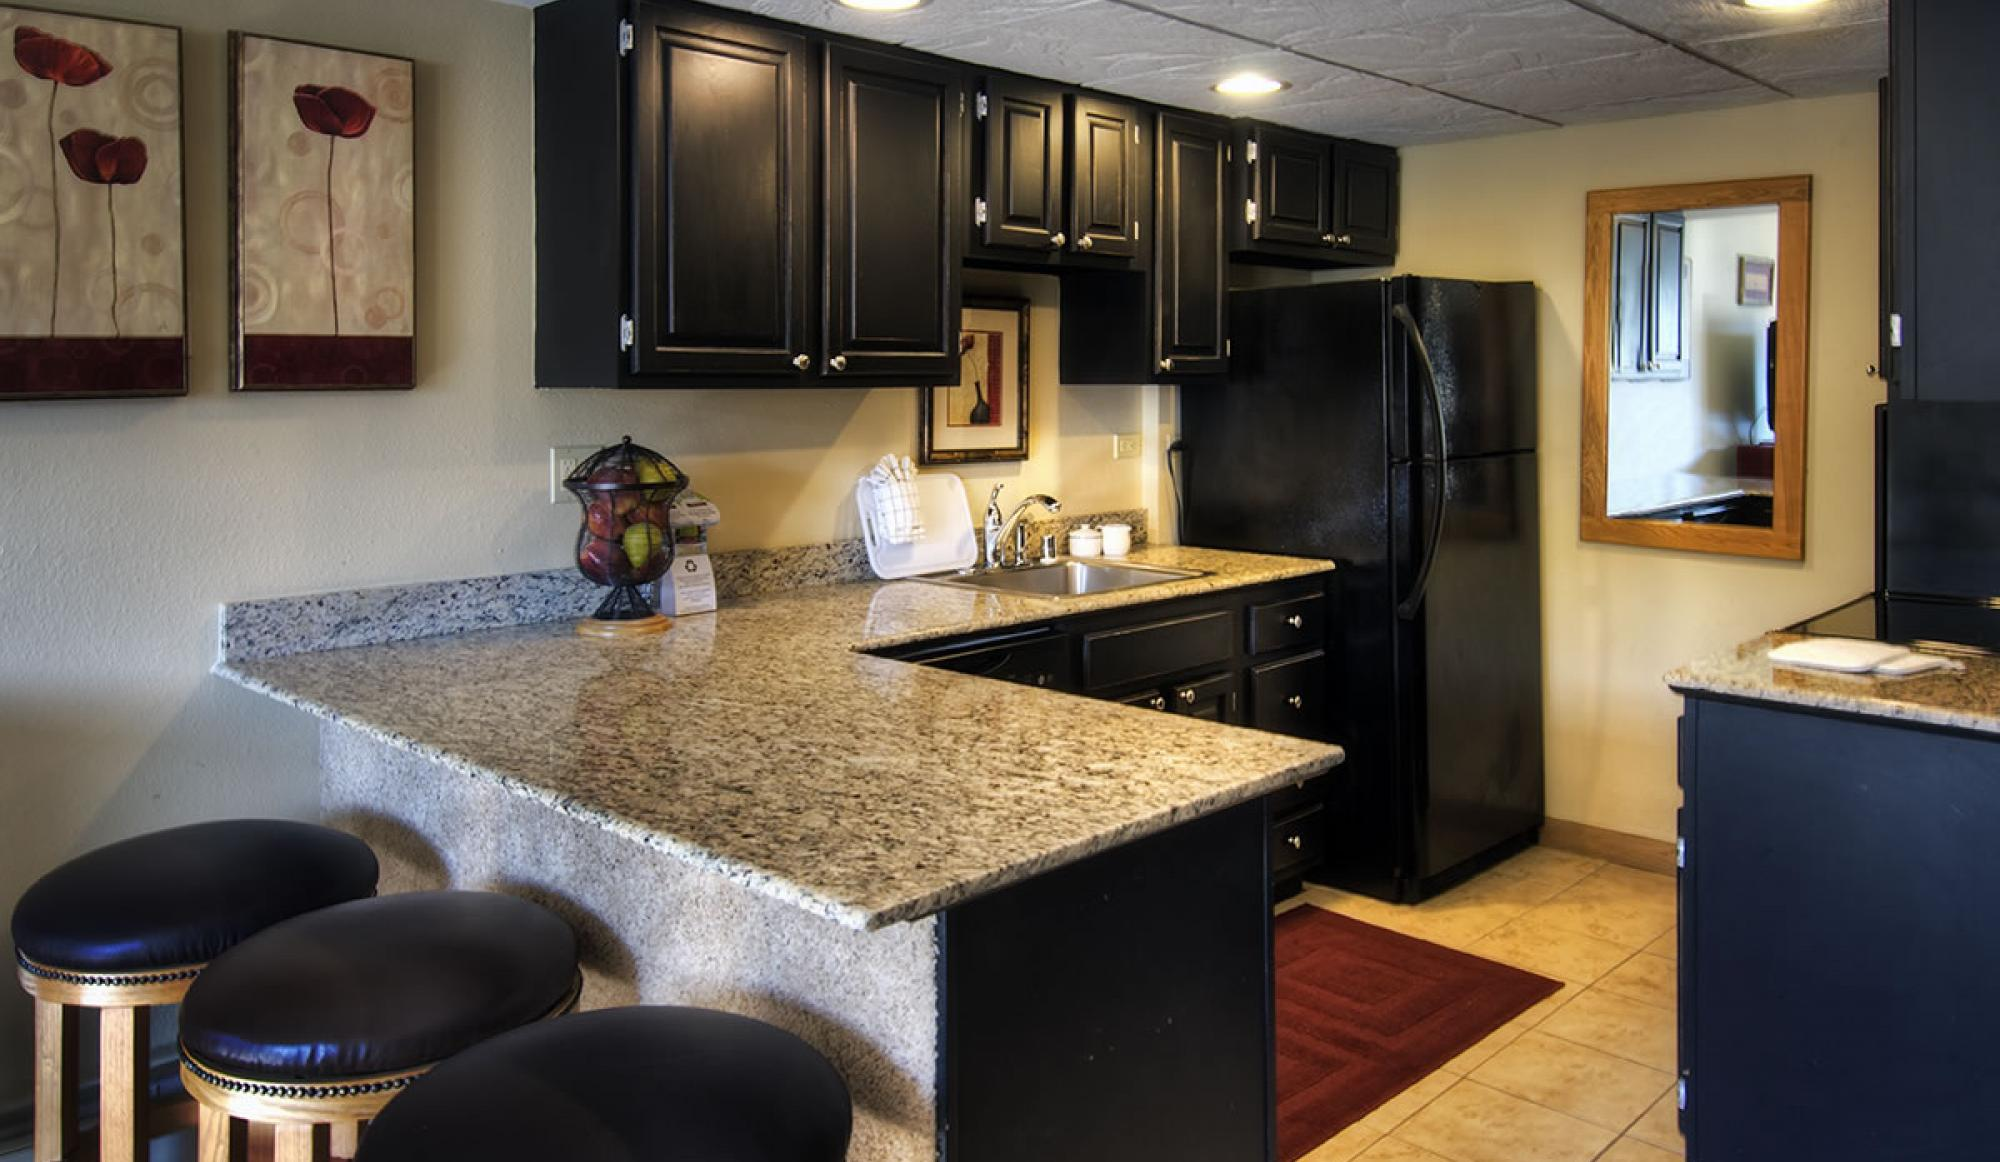 One Bedroom Condo Kitchen at Beaver Run Resort in Breckenridge